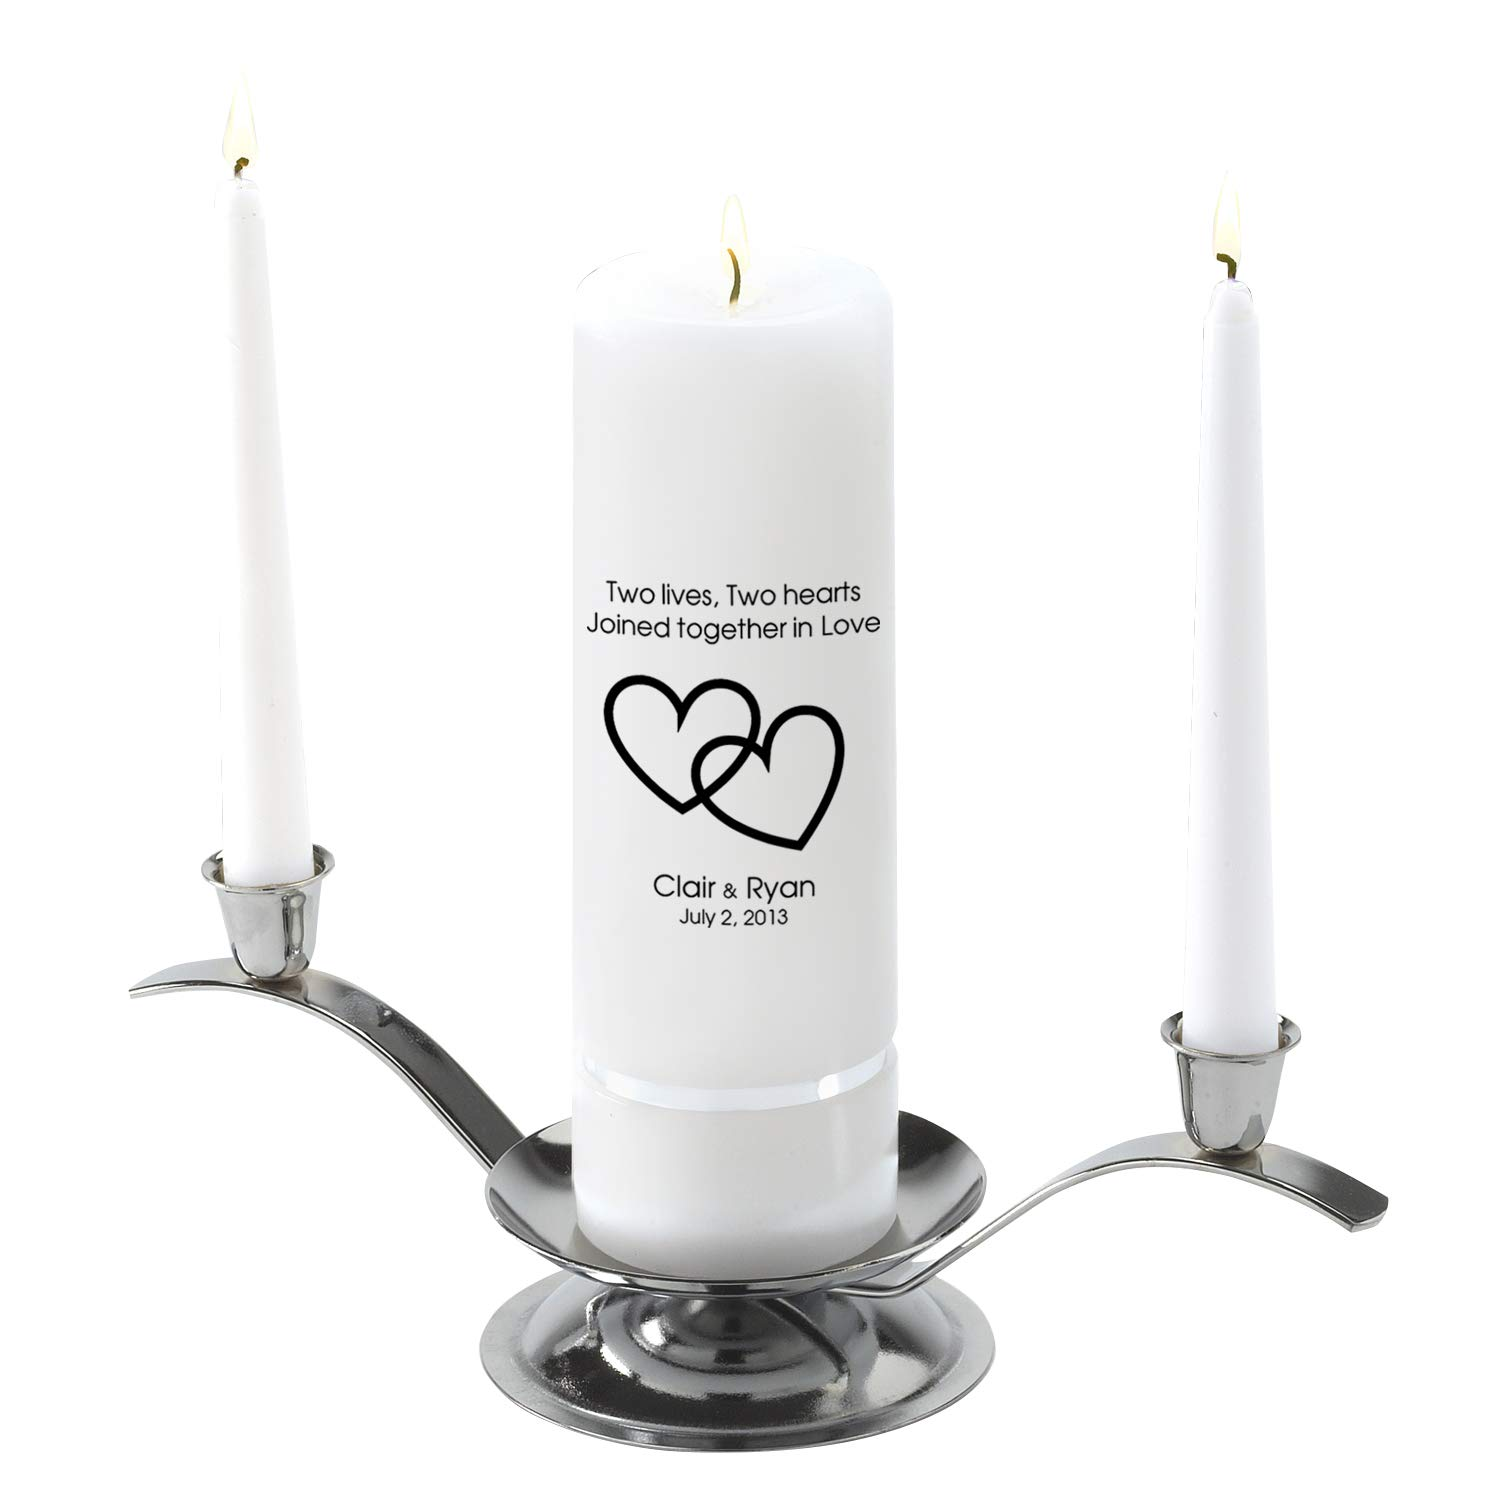 Personalized Unity Wedding Candle Set - Personalized Wedding Candle Set - Includes Stand- Two Lives Two Hearts by A Gift Personalized